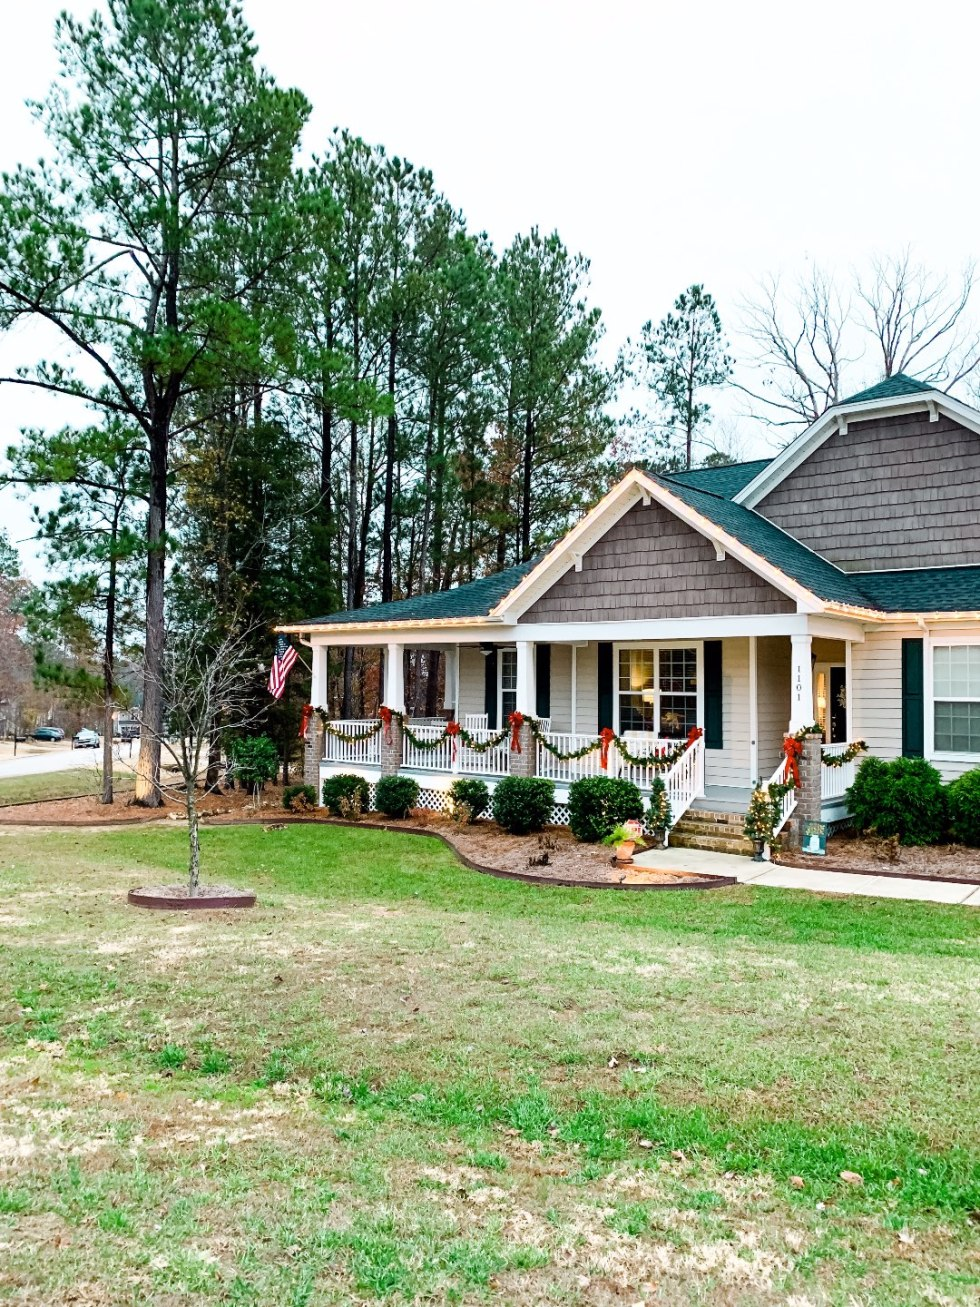 Holiday Home Decor Tour - I'm Fixin' To - @mbg0112 | Holiday Home Decor Tour by popular North Carolina life and style blog, I'm Fixin' To: image of a home exterior decorated with Pre-Lit Garland, Potted Pre-Lit Trees, Pottery Barn Door Mat (old, love this option), Plaid Mat, 3 Foot Pre-Lit Tree Buffalo Plaid Pillow Covers, and White Berry Wreath.